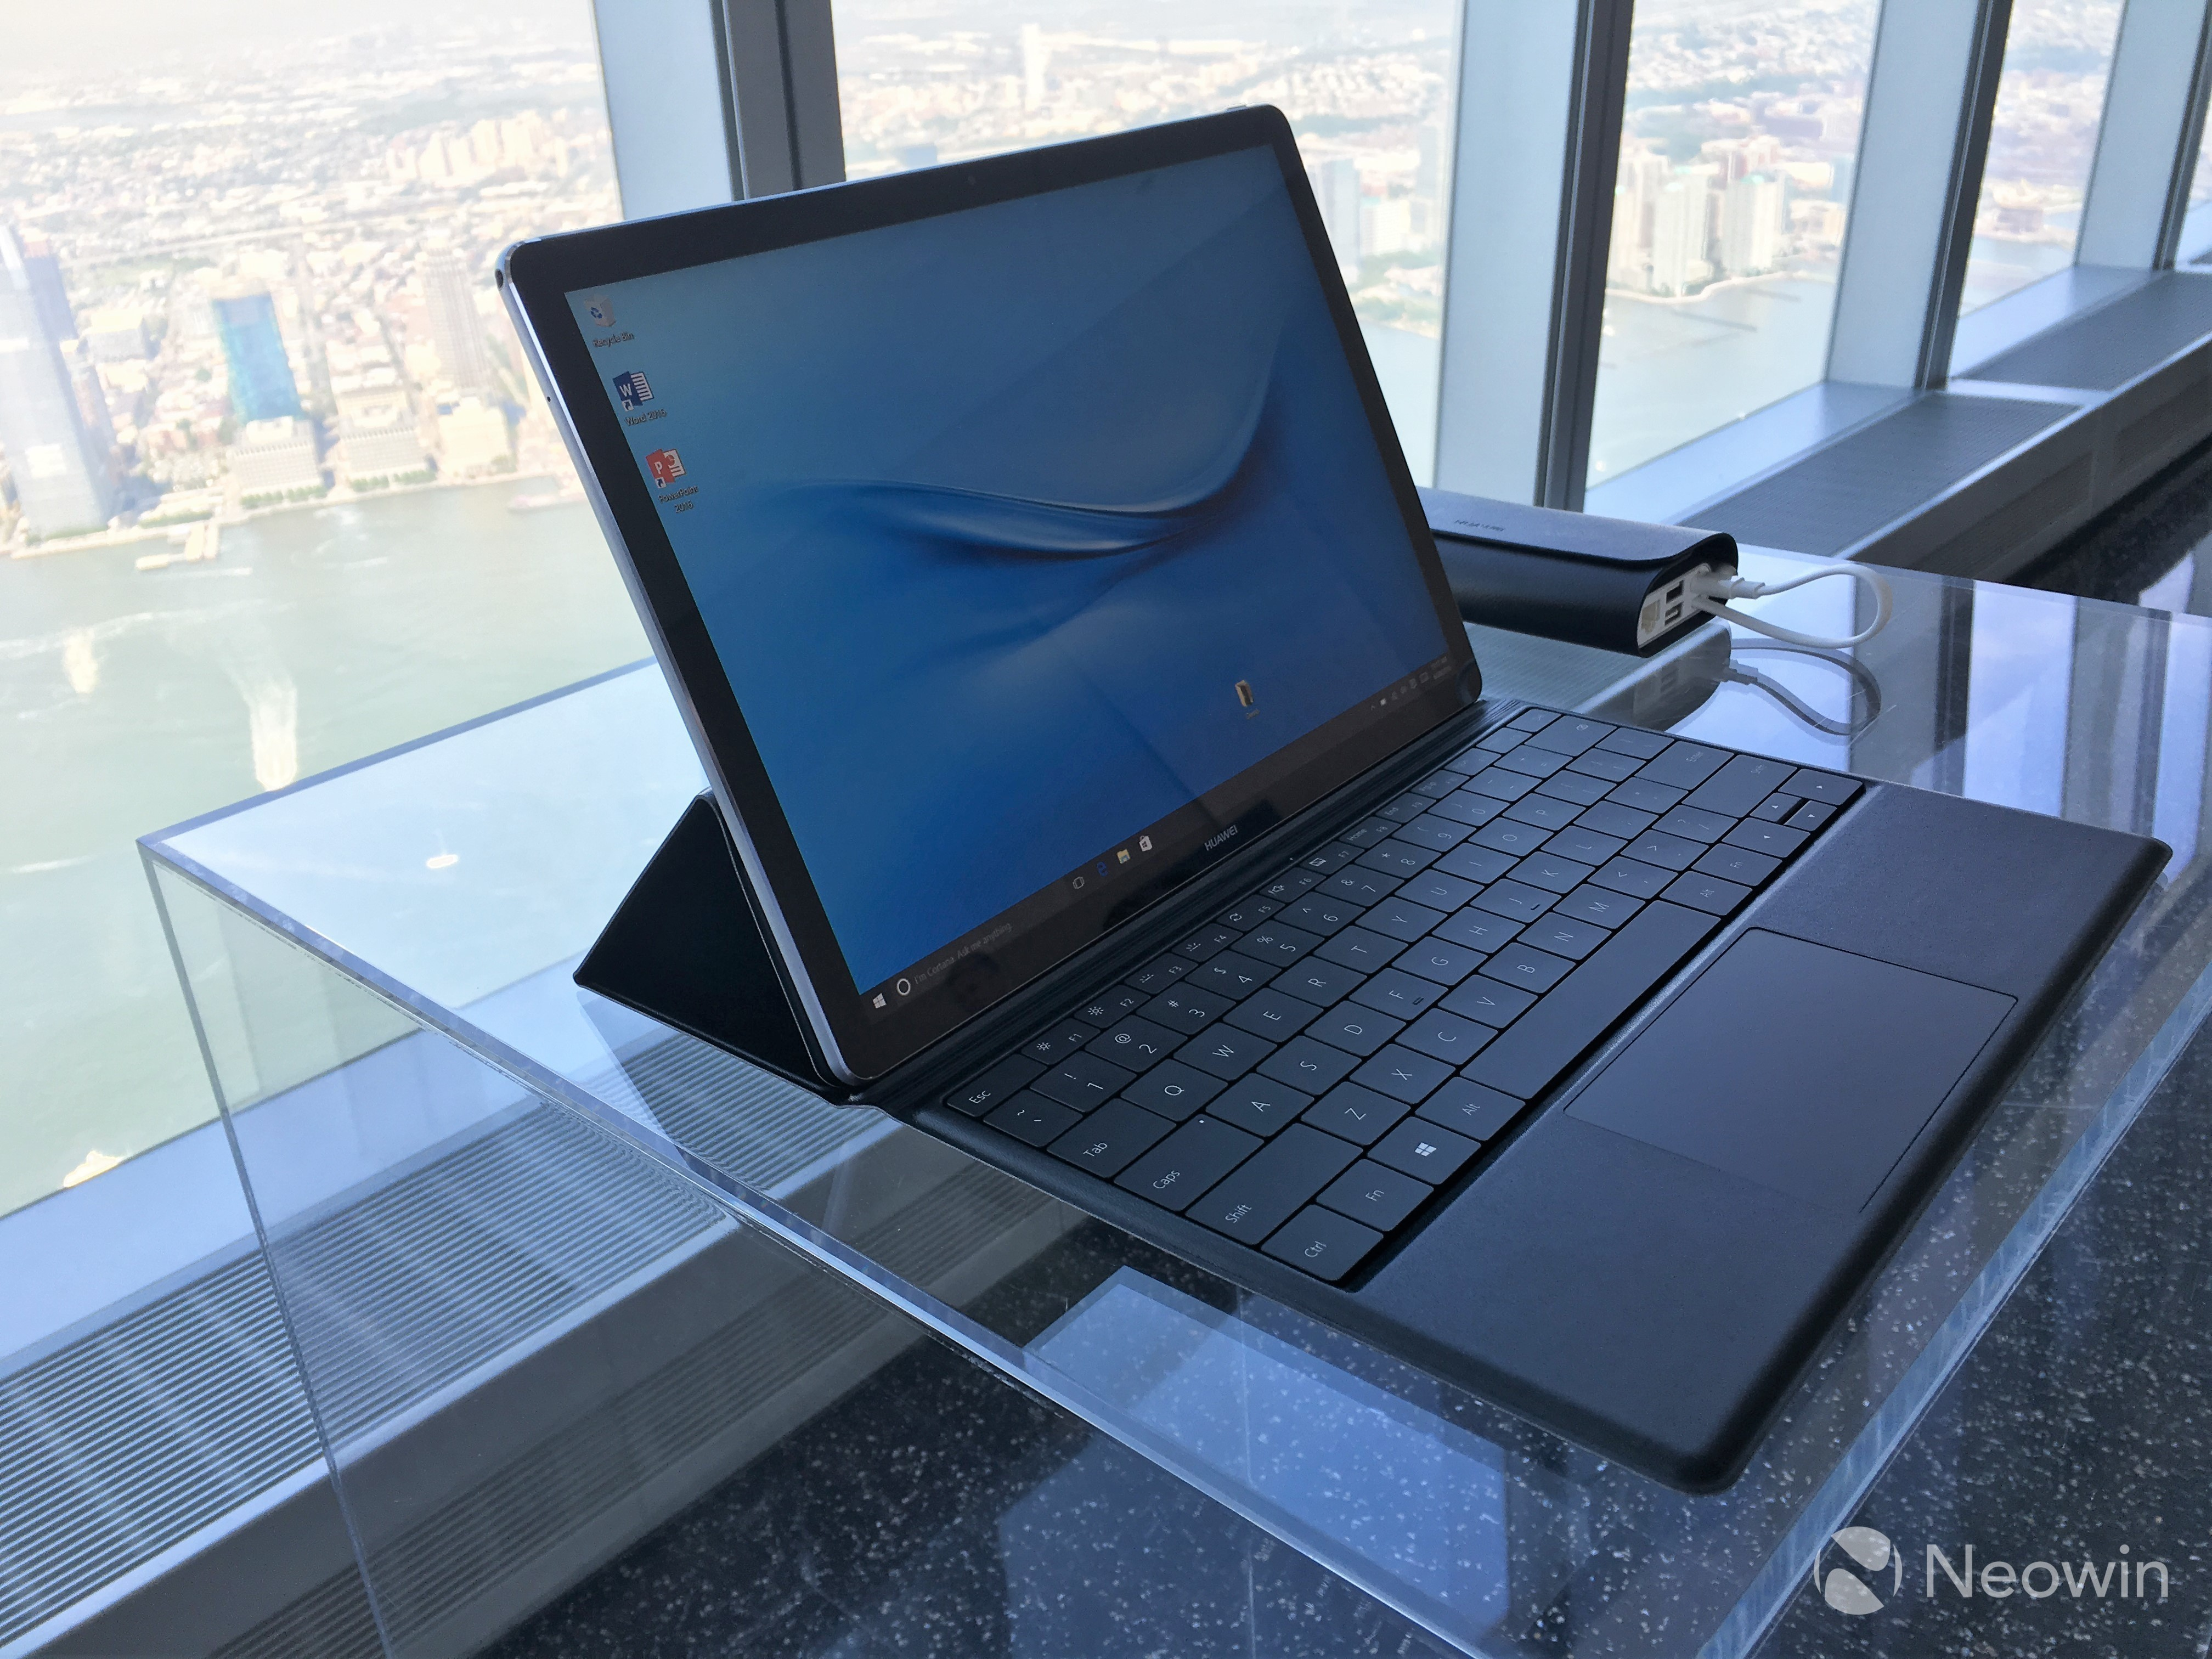 You can finally put your Huawei MateBook back on the Insider Program